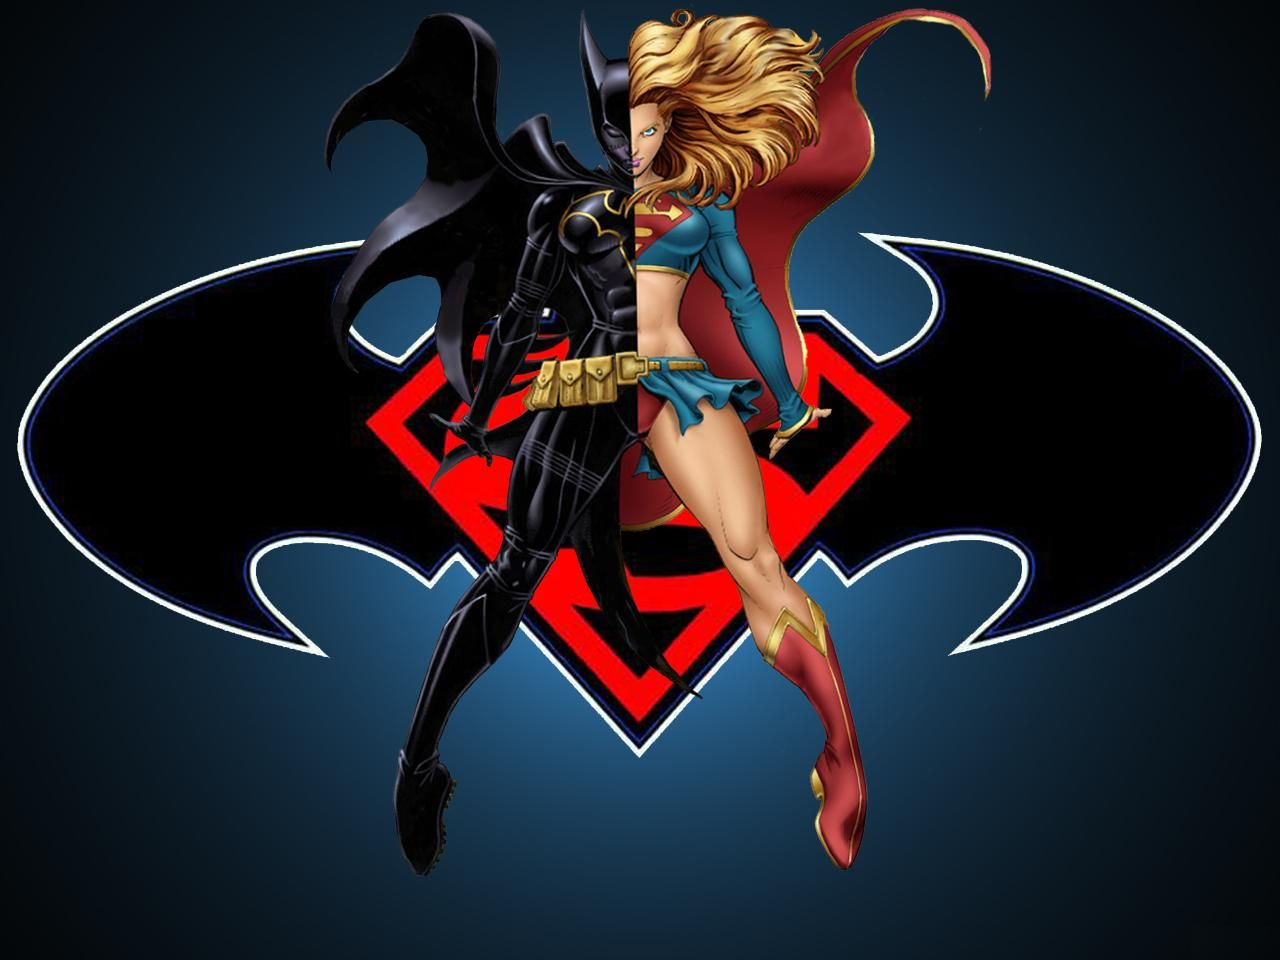 Batgirl And Supergirl Wallpaper Hd Wallpapers High Definition 100 Hd Quality Batgirl Superhero Supergirl